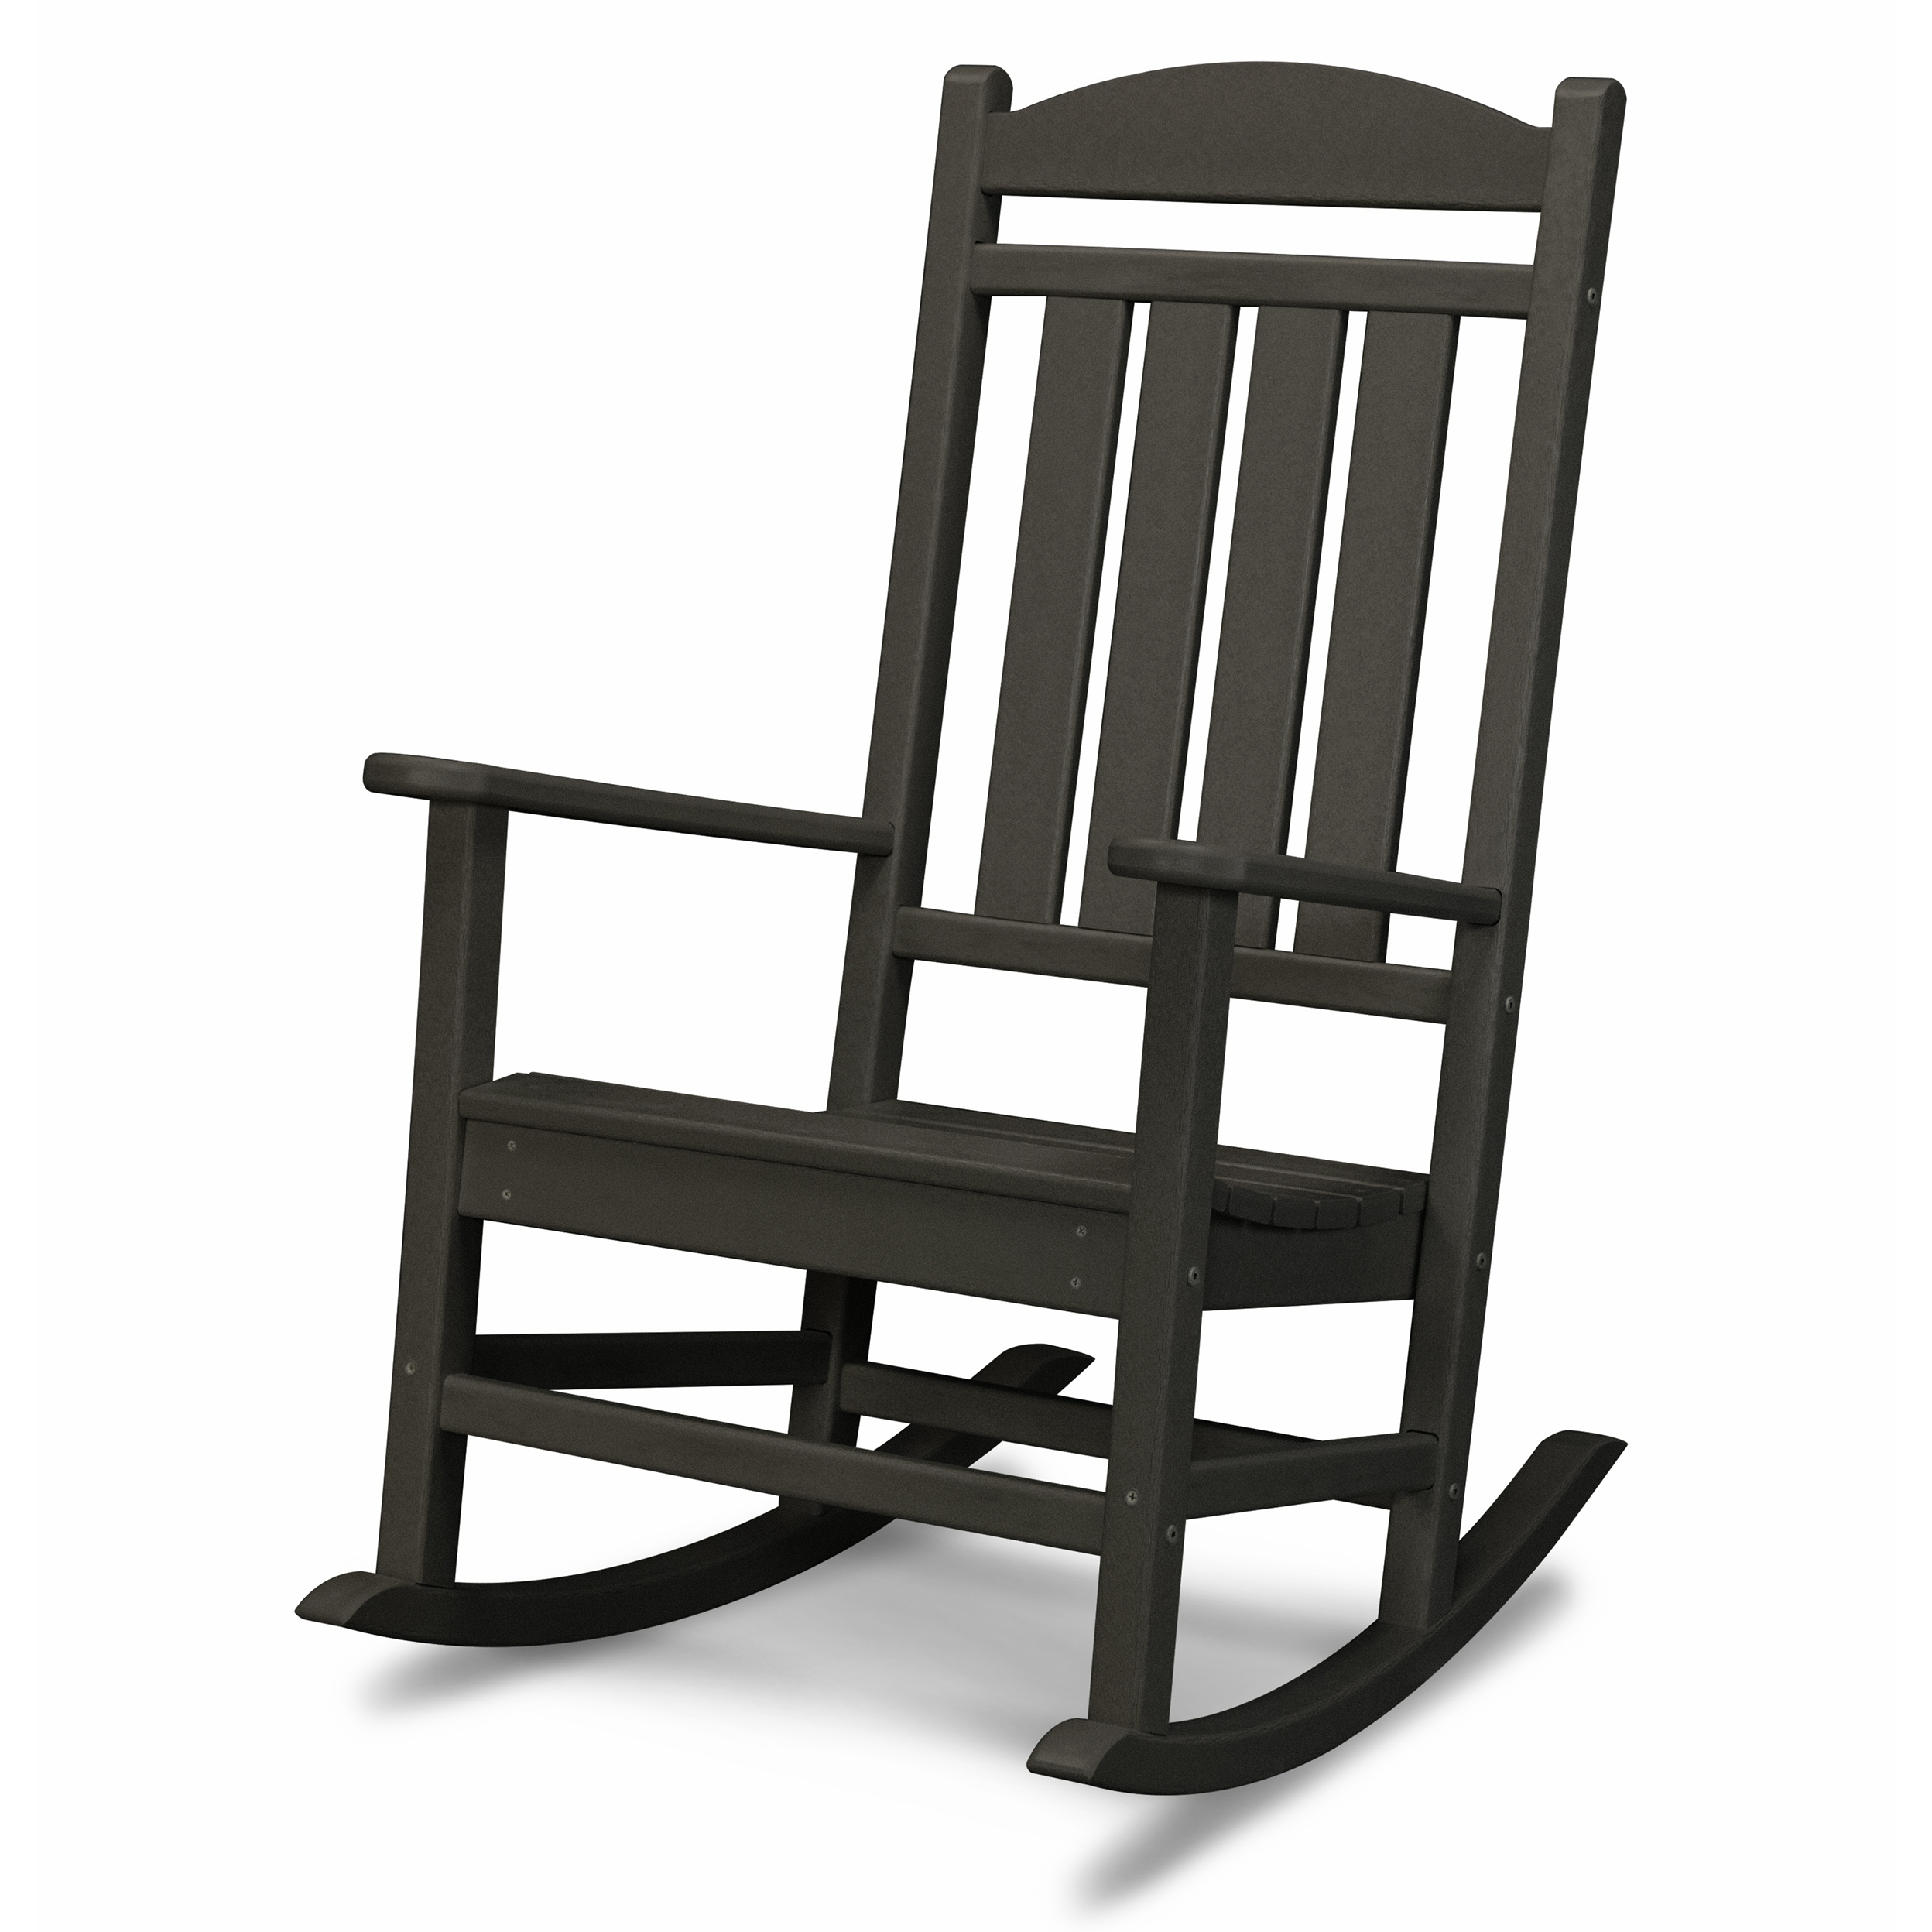 Inspirational Polywood Adirondack Rocking Chair Unique : Inmunoanalisis.com